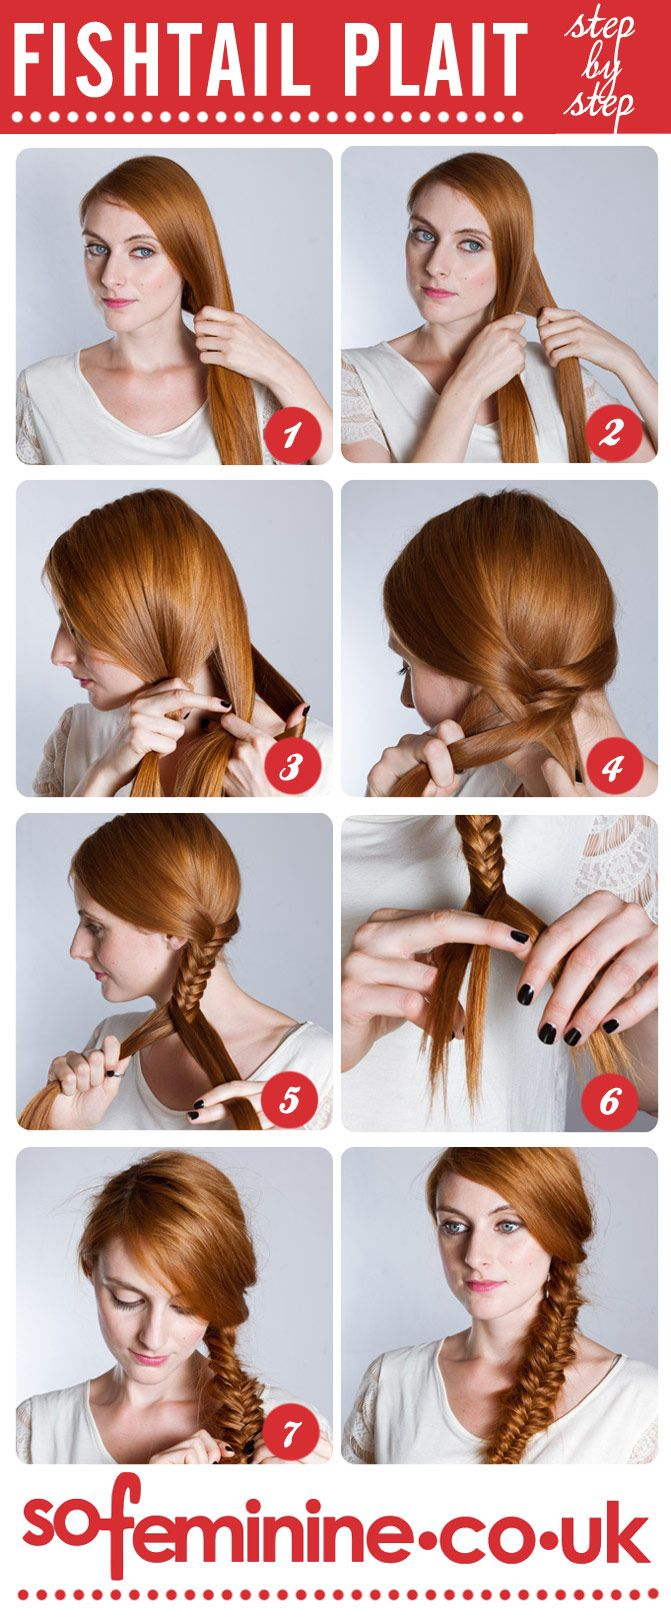 Best Fishtail Braid Tutorials Ideas On Pinterest DIY Hard - Braid diy pinterest